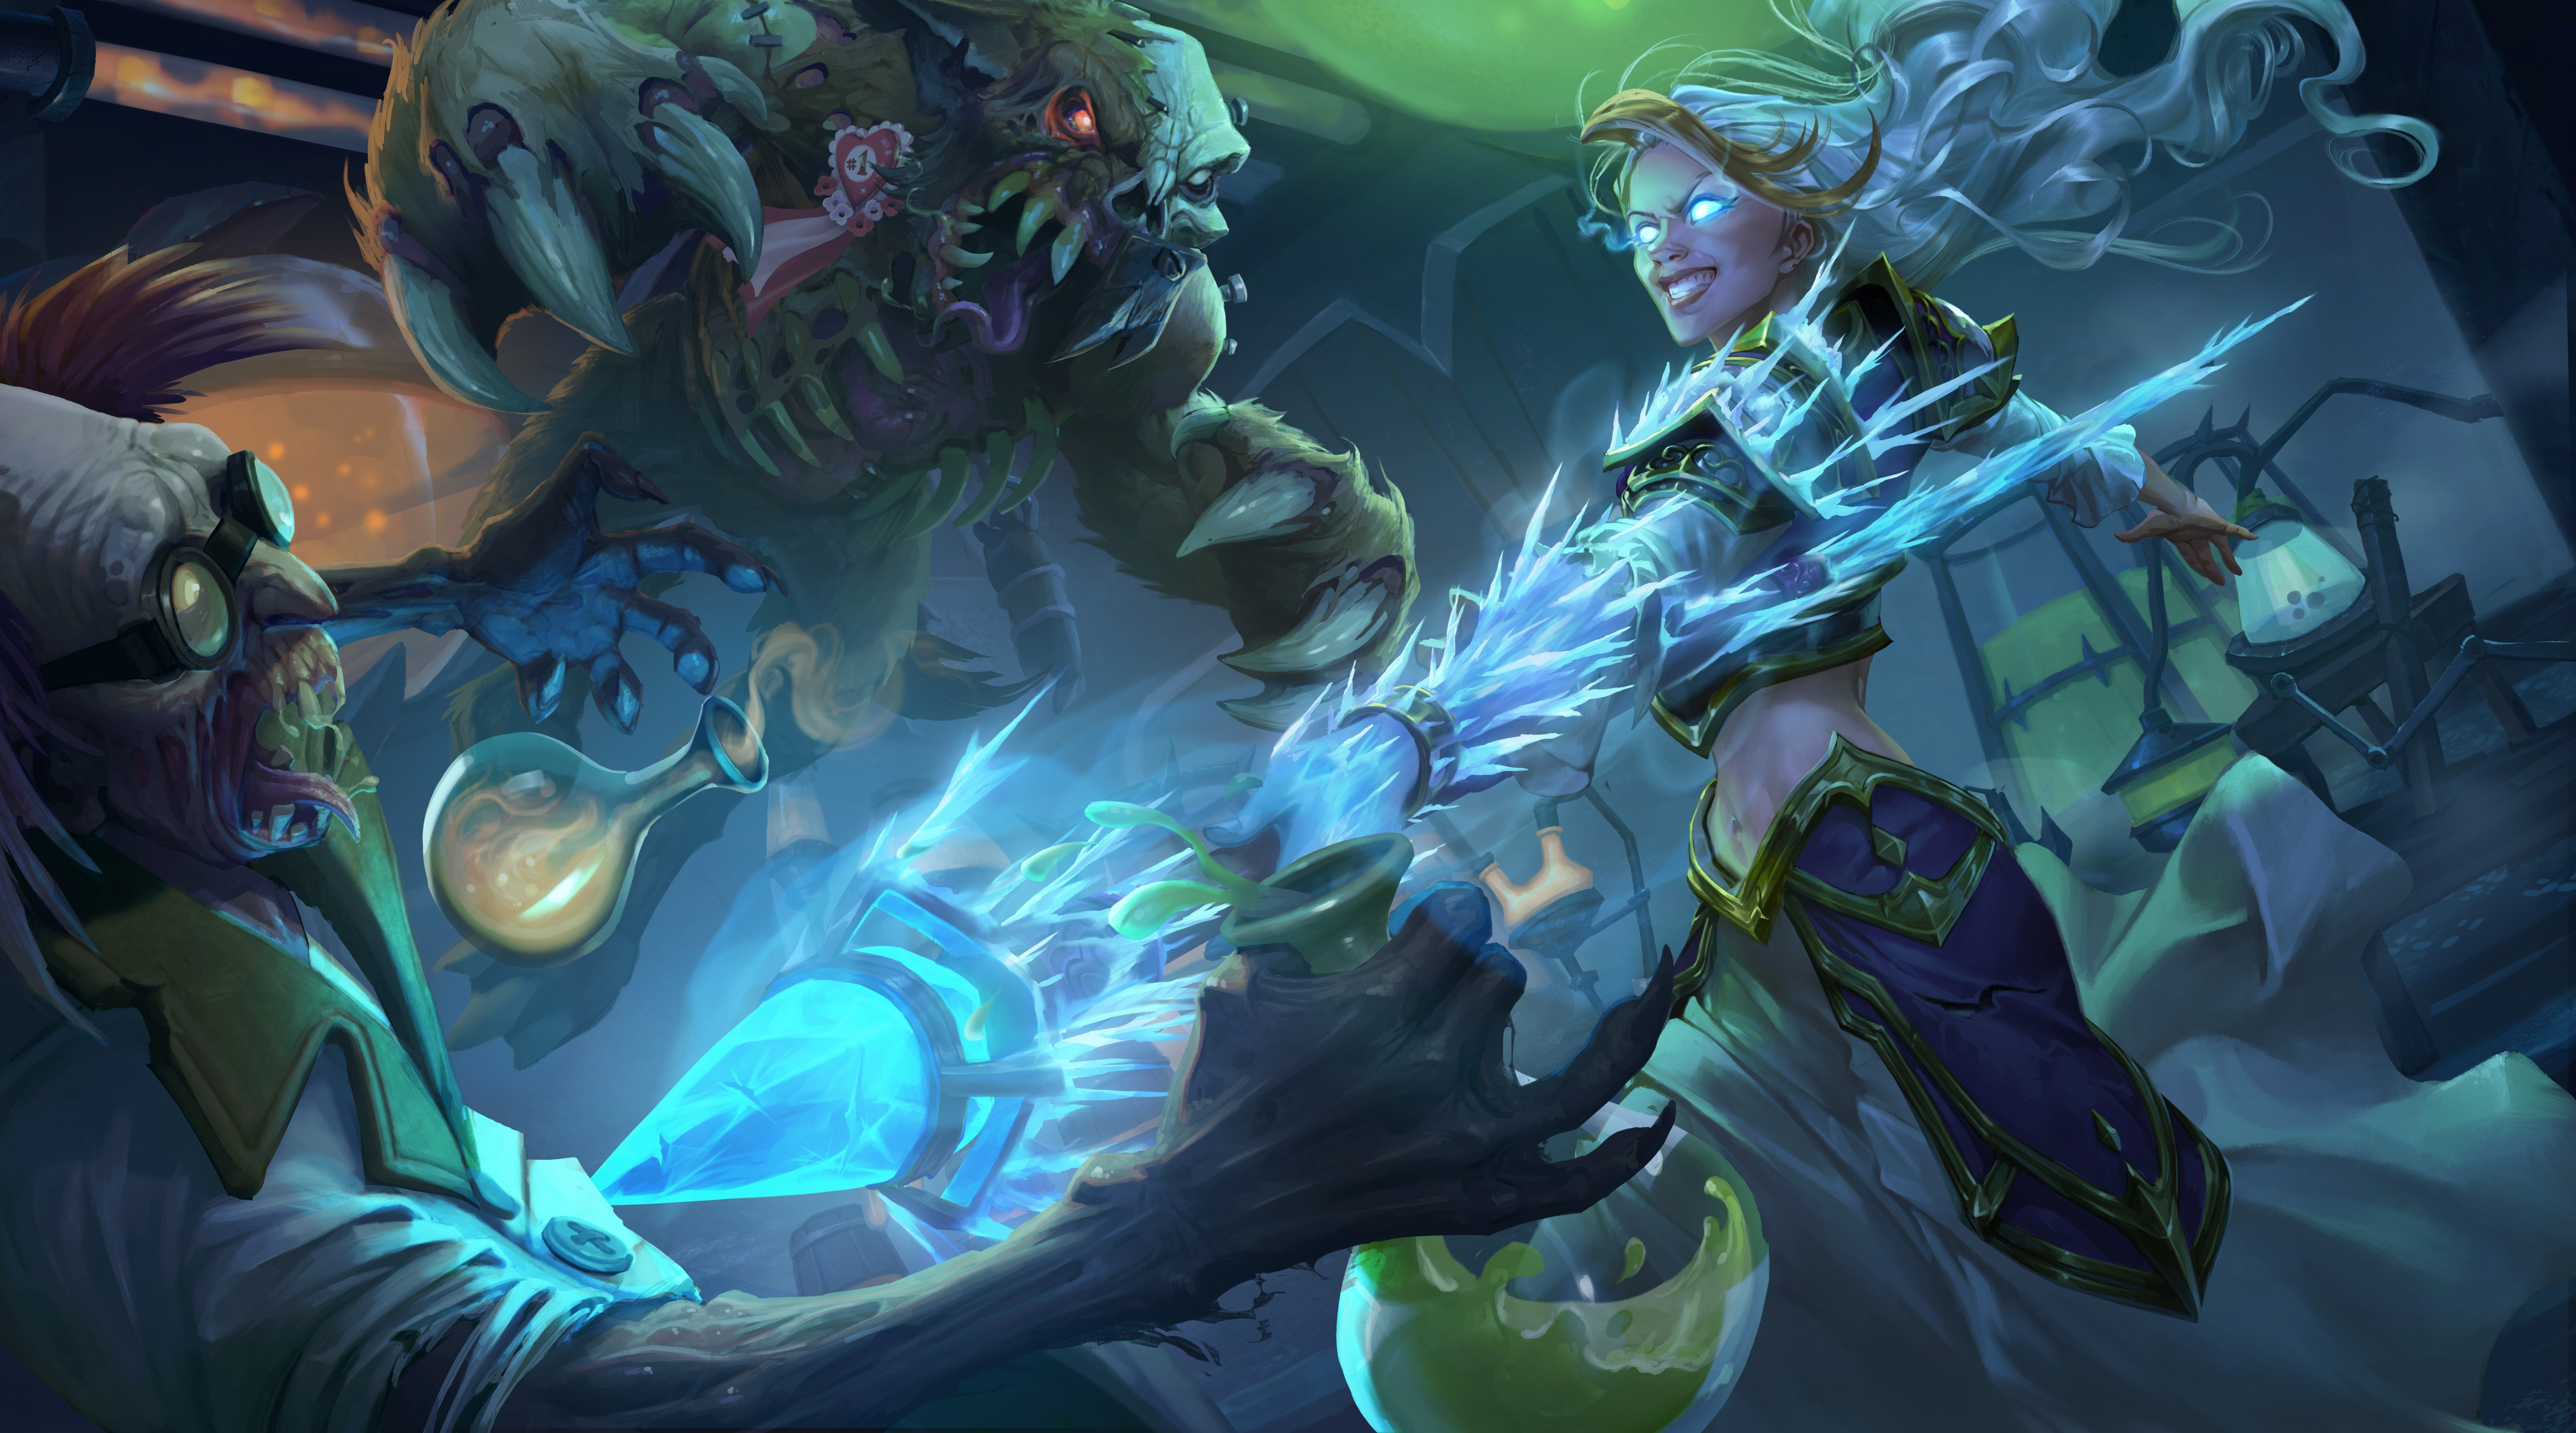 Knights Of The Frozen Throne Wallpaper: Hearthstone's New Cards Promise Some Wild Possibilities